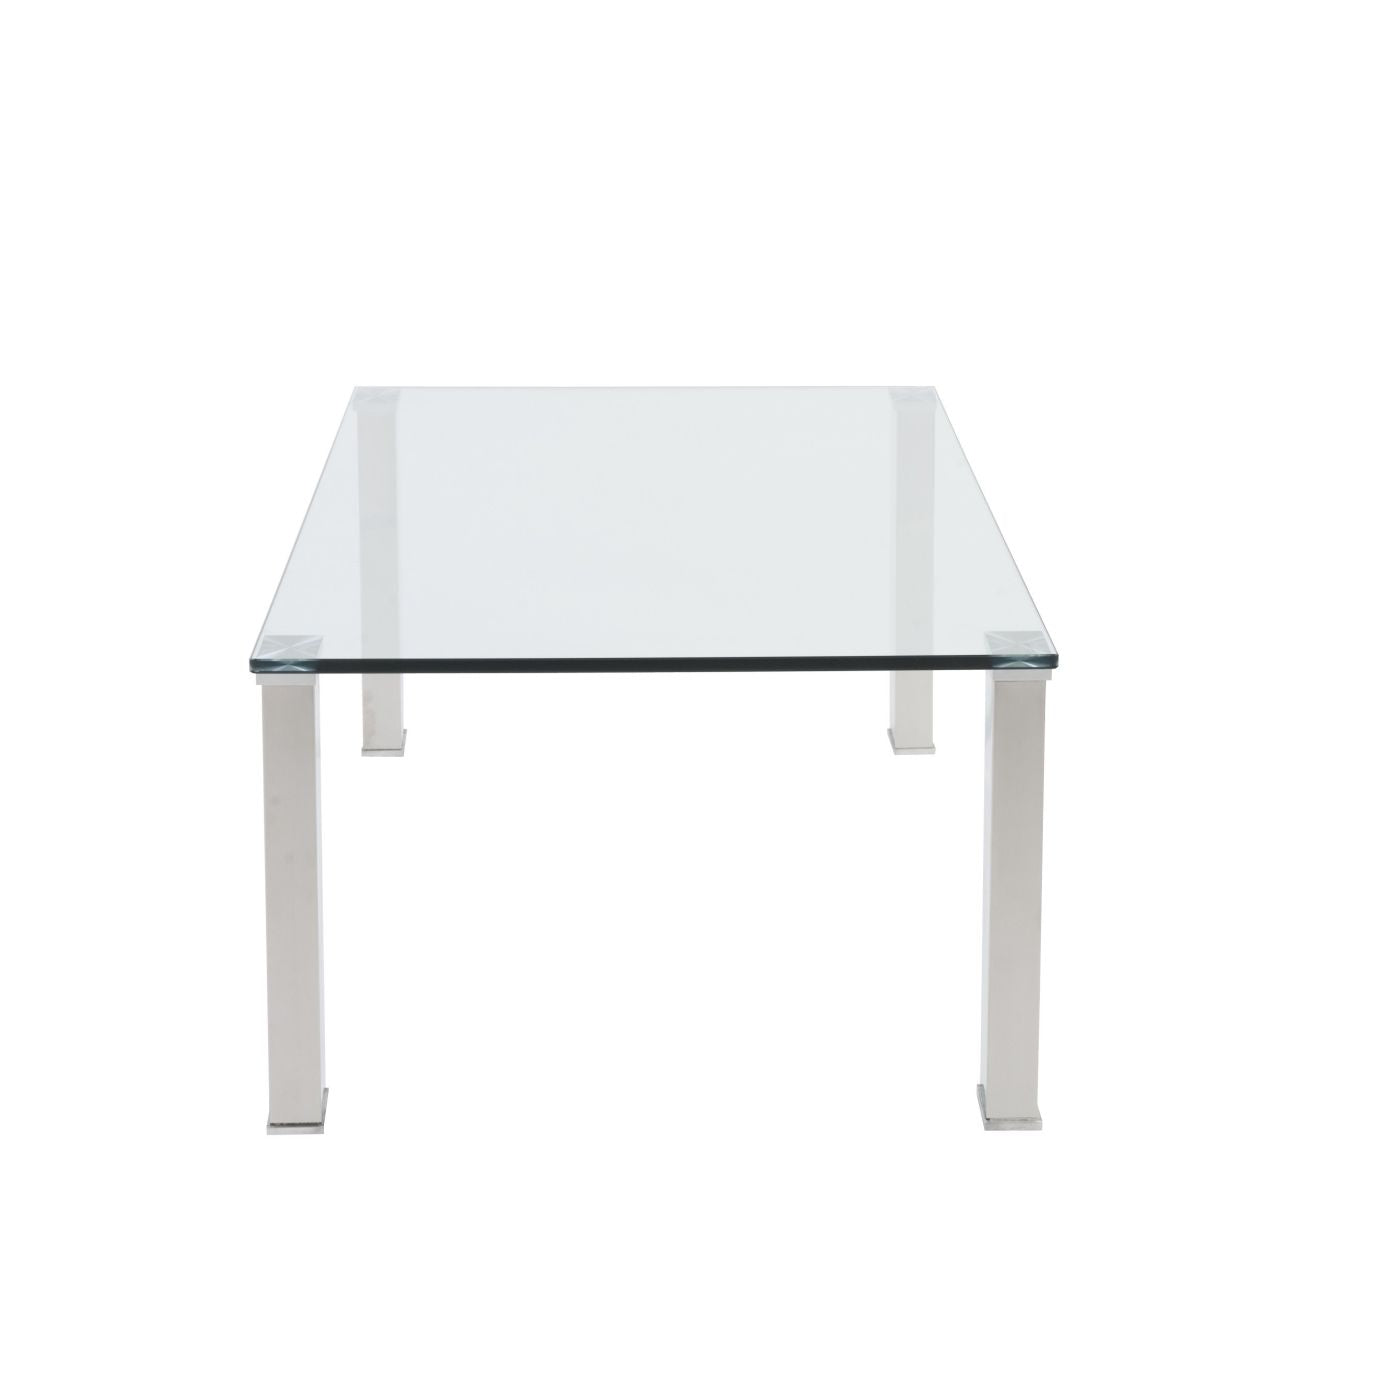 ... Beth Rectangle Coffee Table With Clear Tempered Glass Top And Polished  Stainless Steel Legs